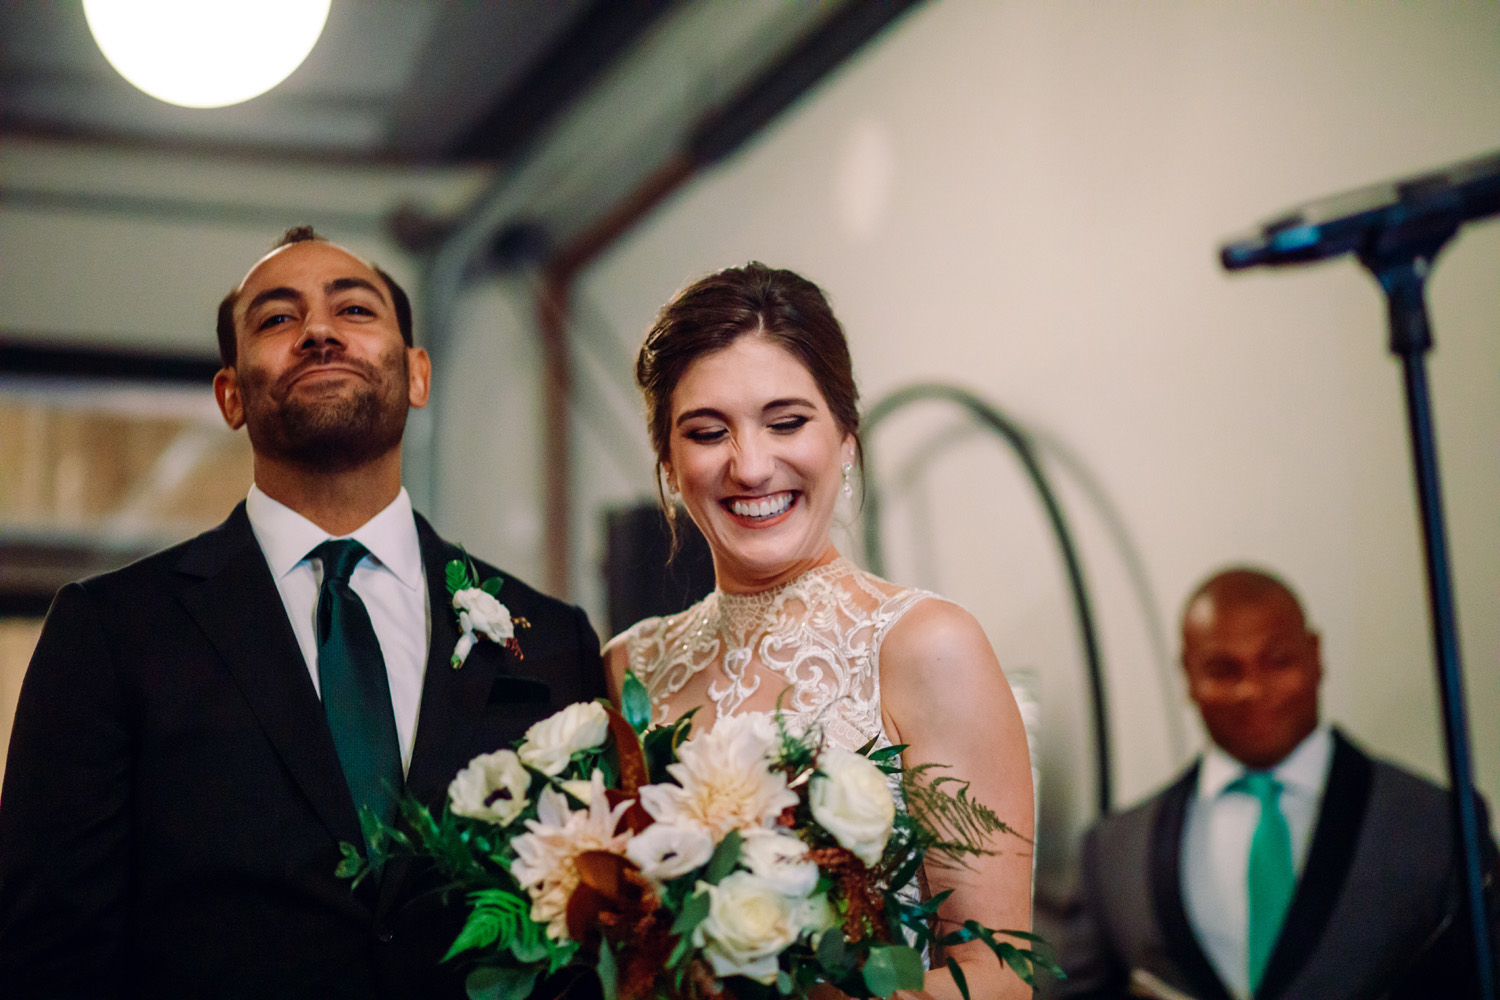 bride and groom smiling at wedding with bridal bouquet